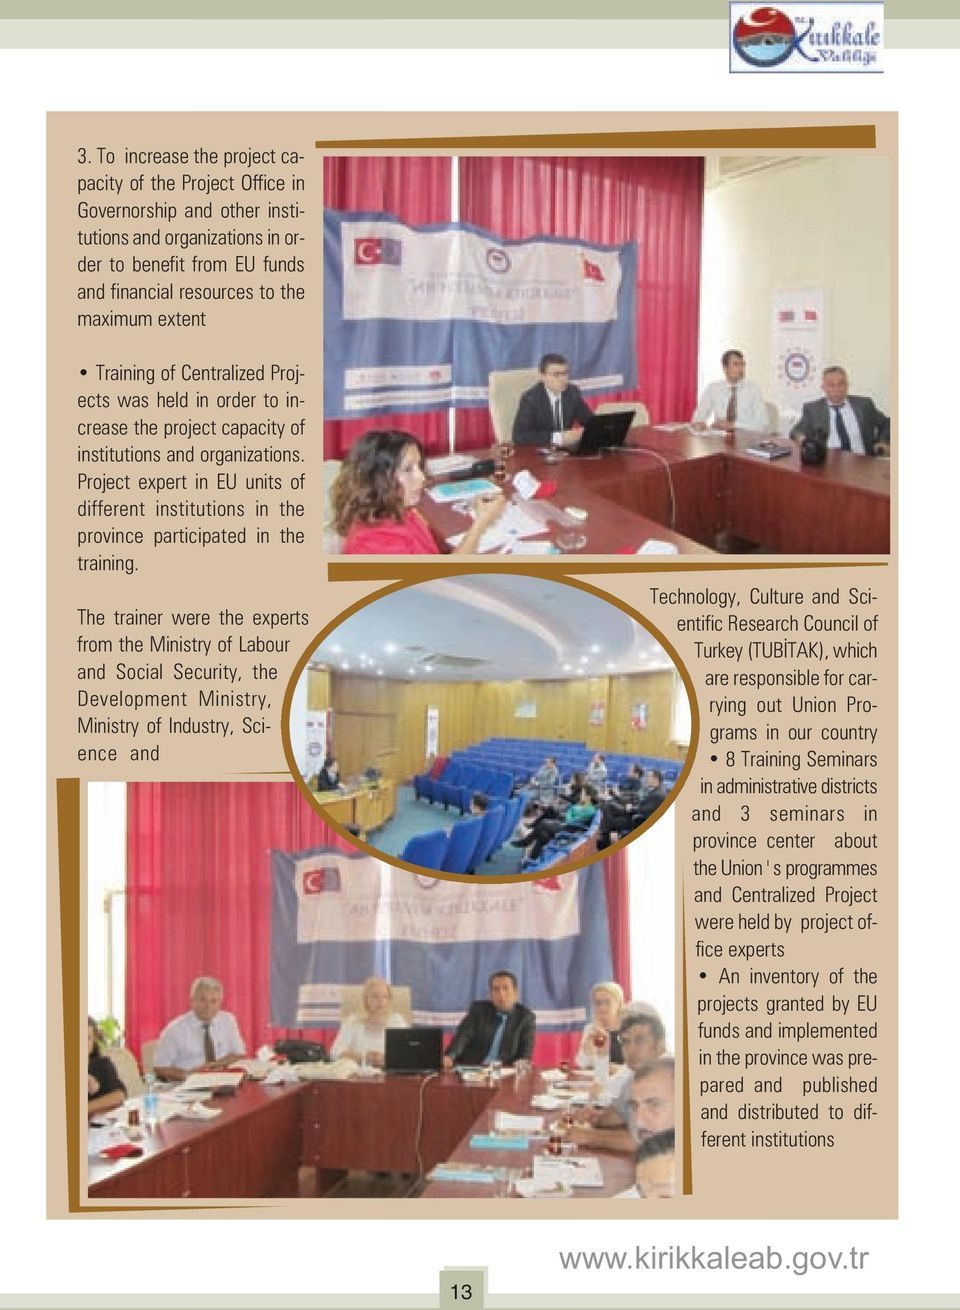 Training of Centralized Projects was held in order to increase the project capacity of institutions and organizations.